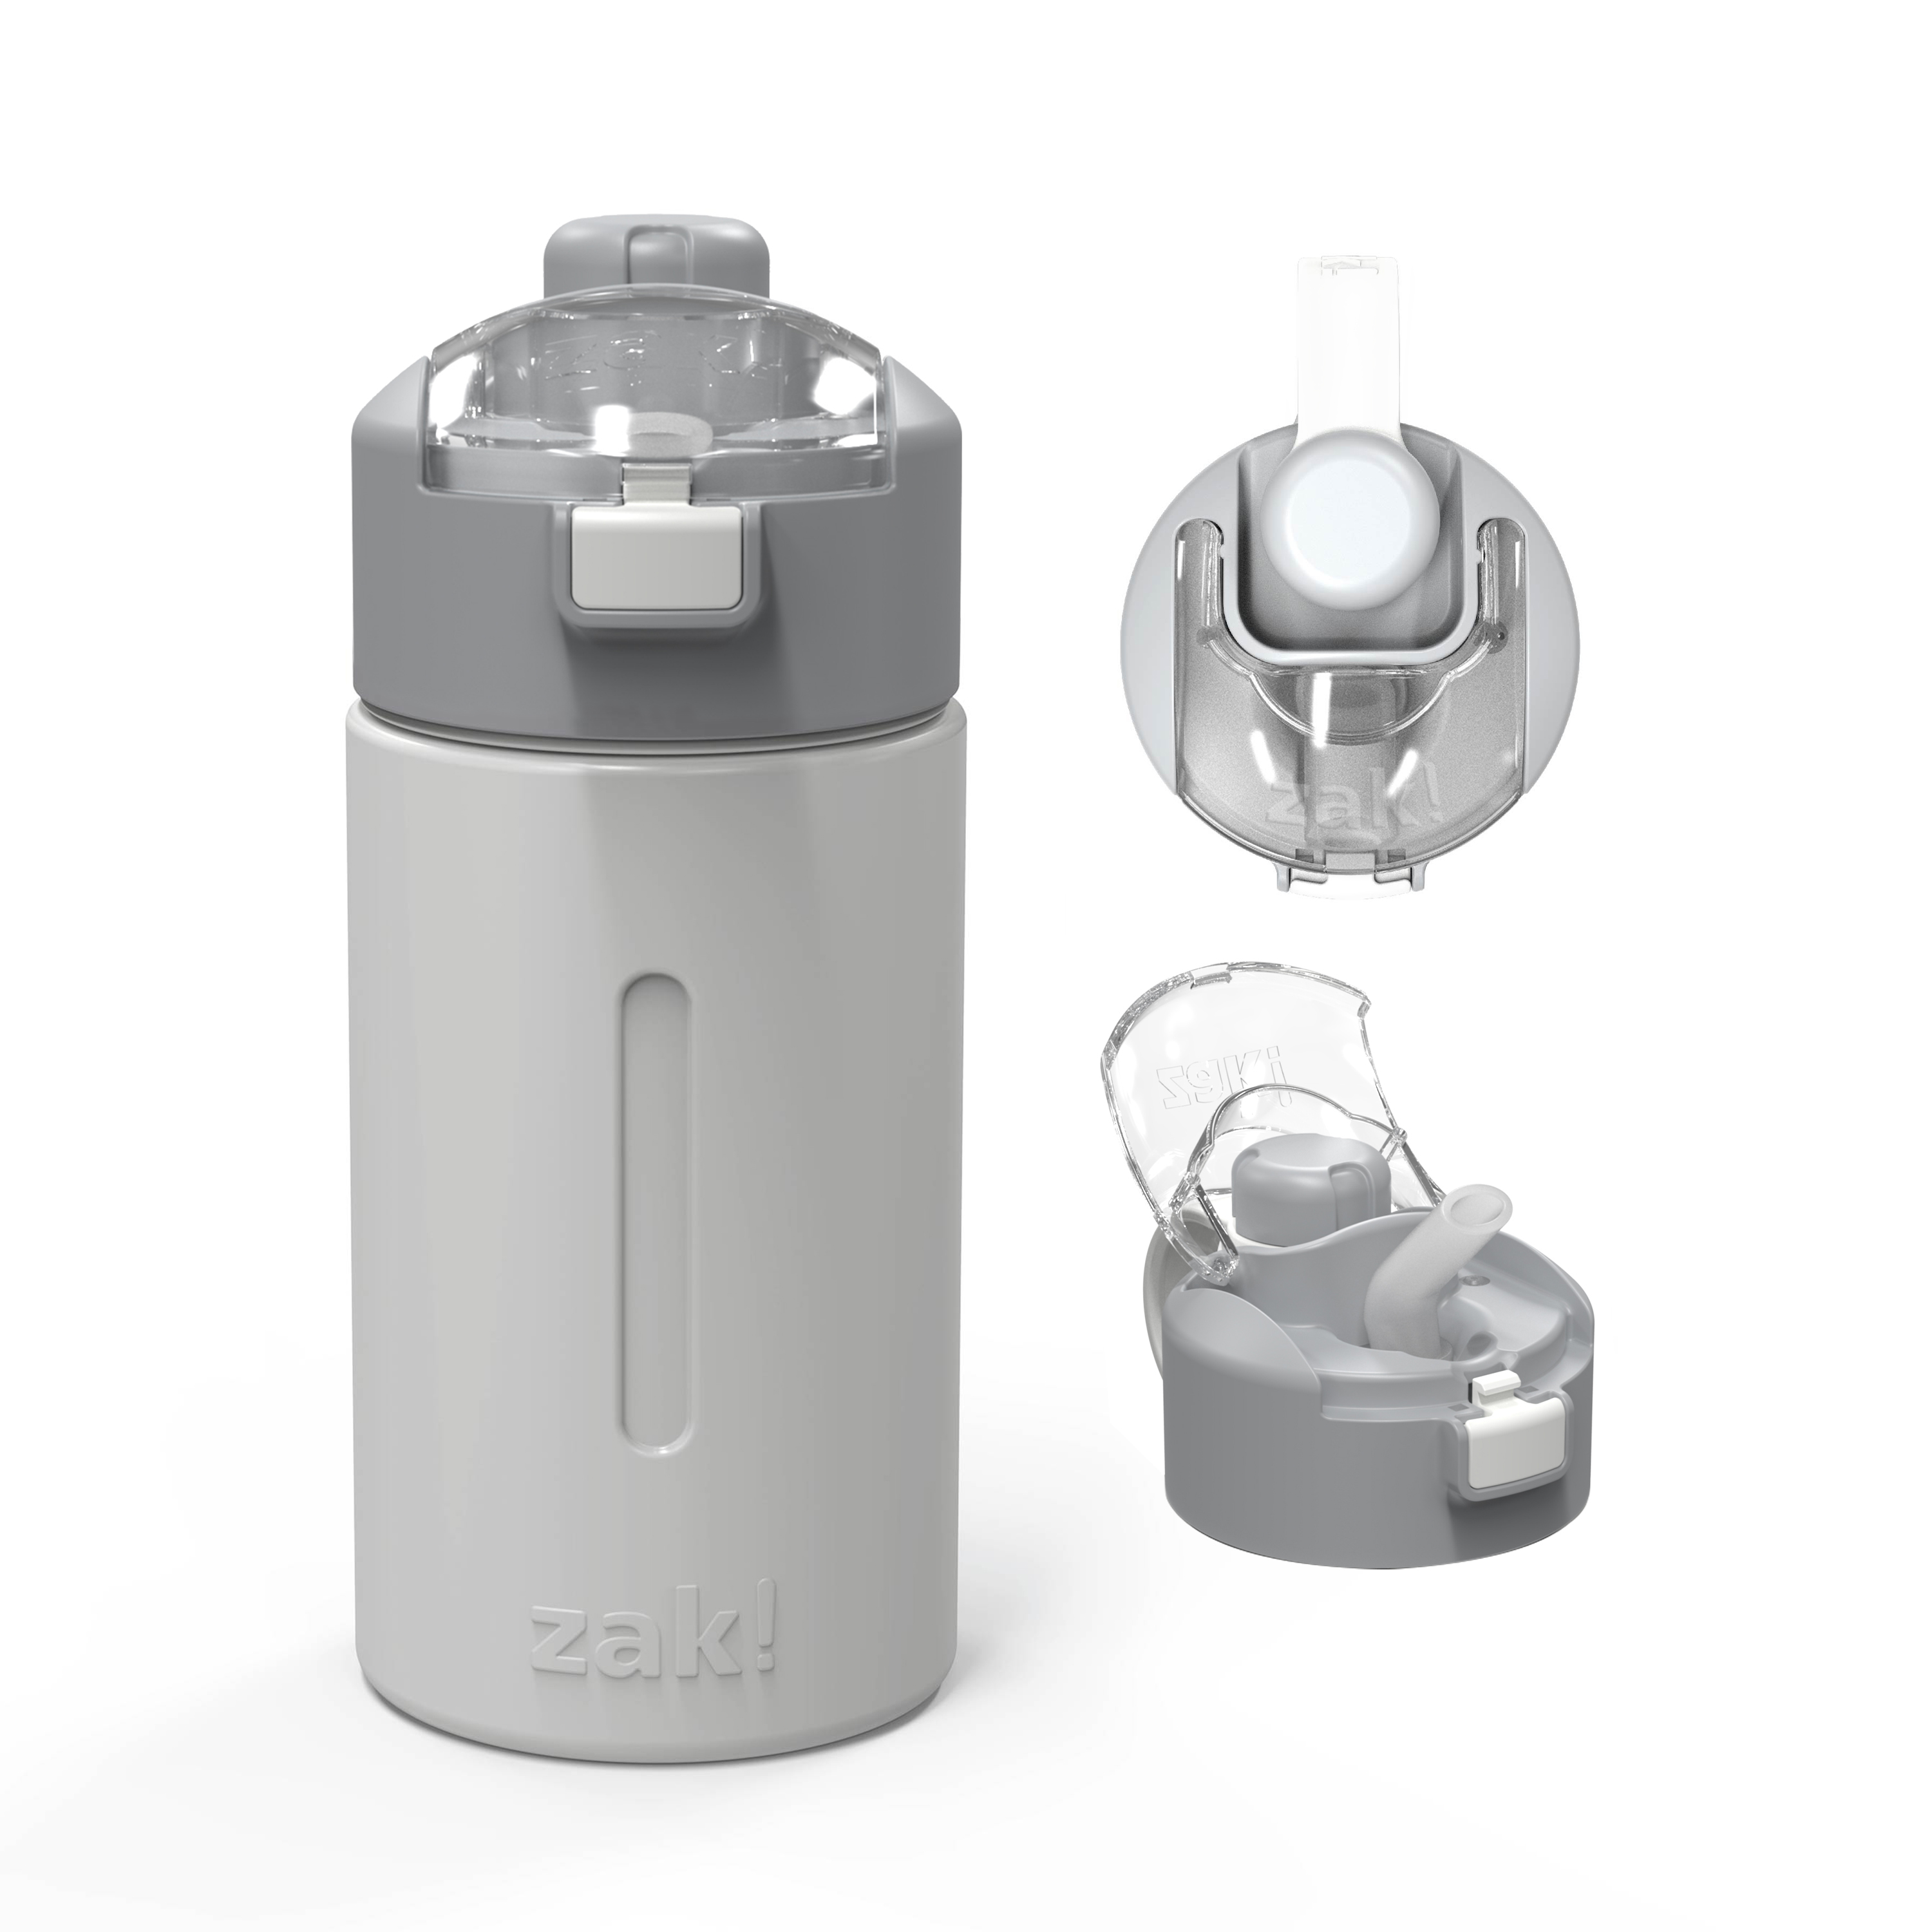 Genesis 12 ounce Vacuum Insulated Stainless Steel Tumbler, Gray slideshow image 1